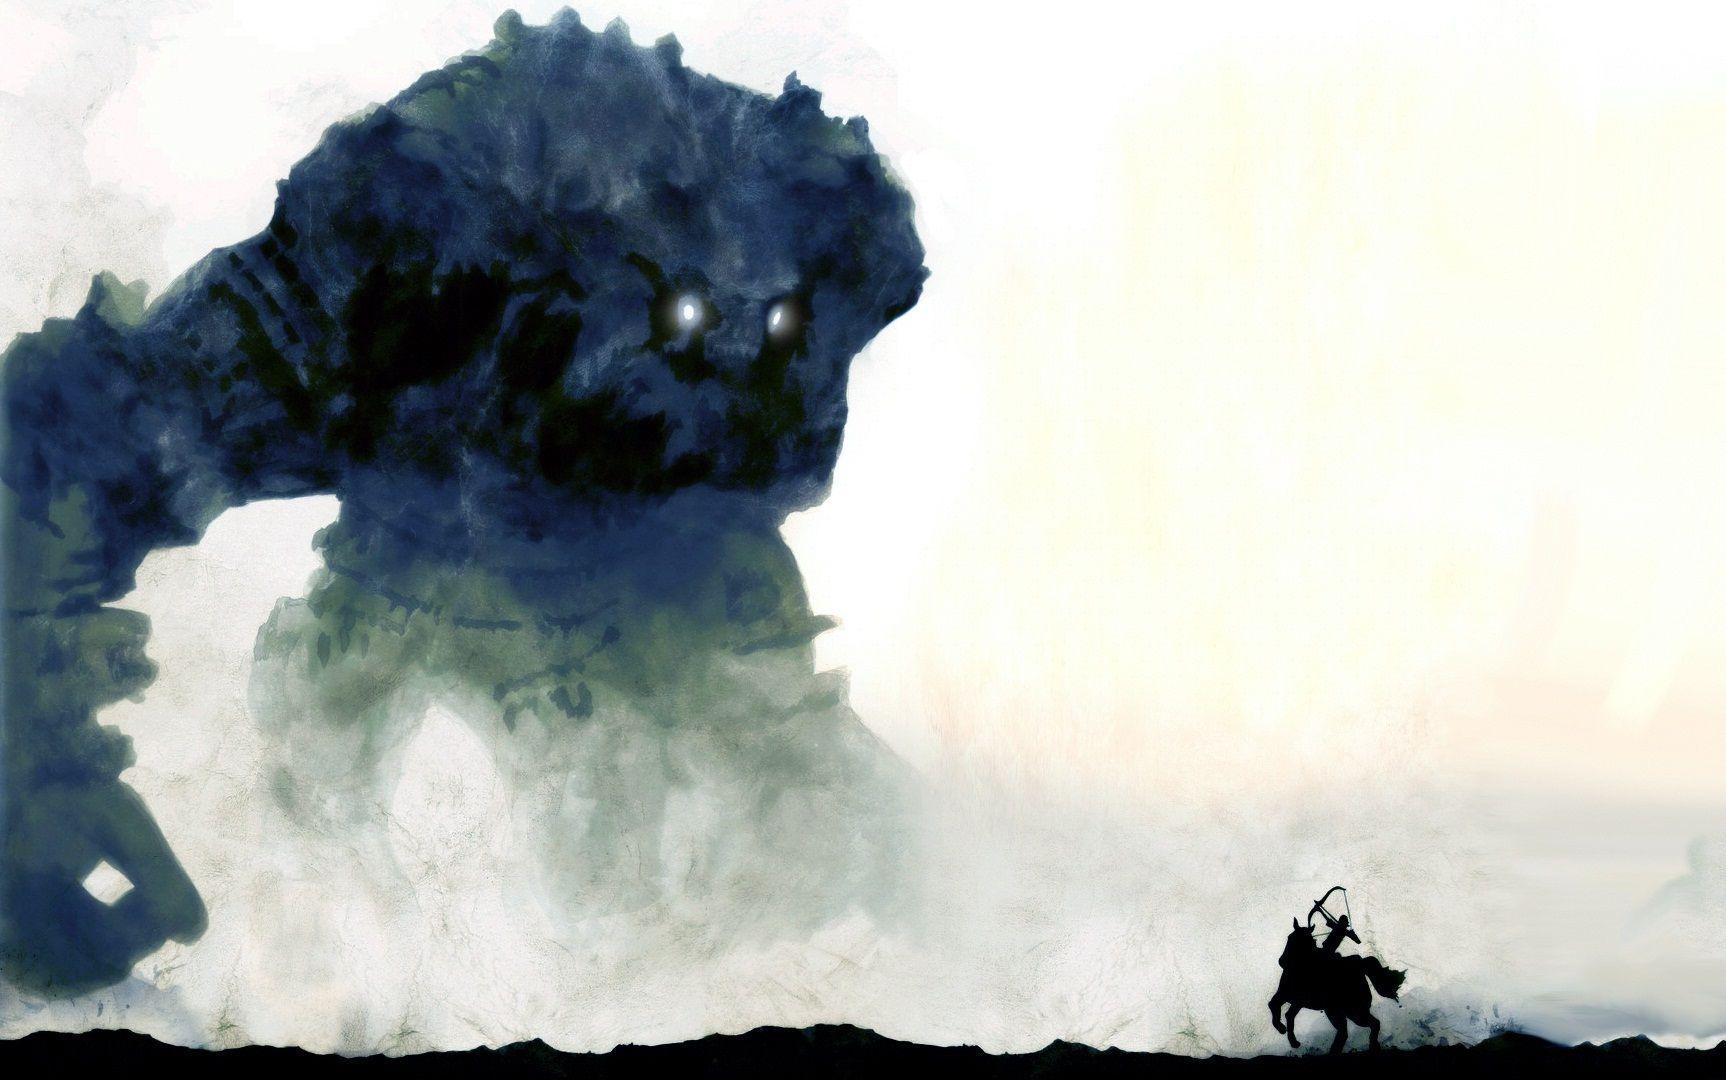 Shadow of the Colossus HD Wallpaper | 1920x1080 | ID:50723